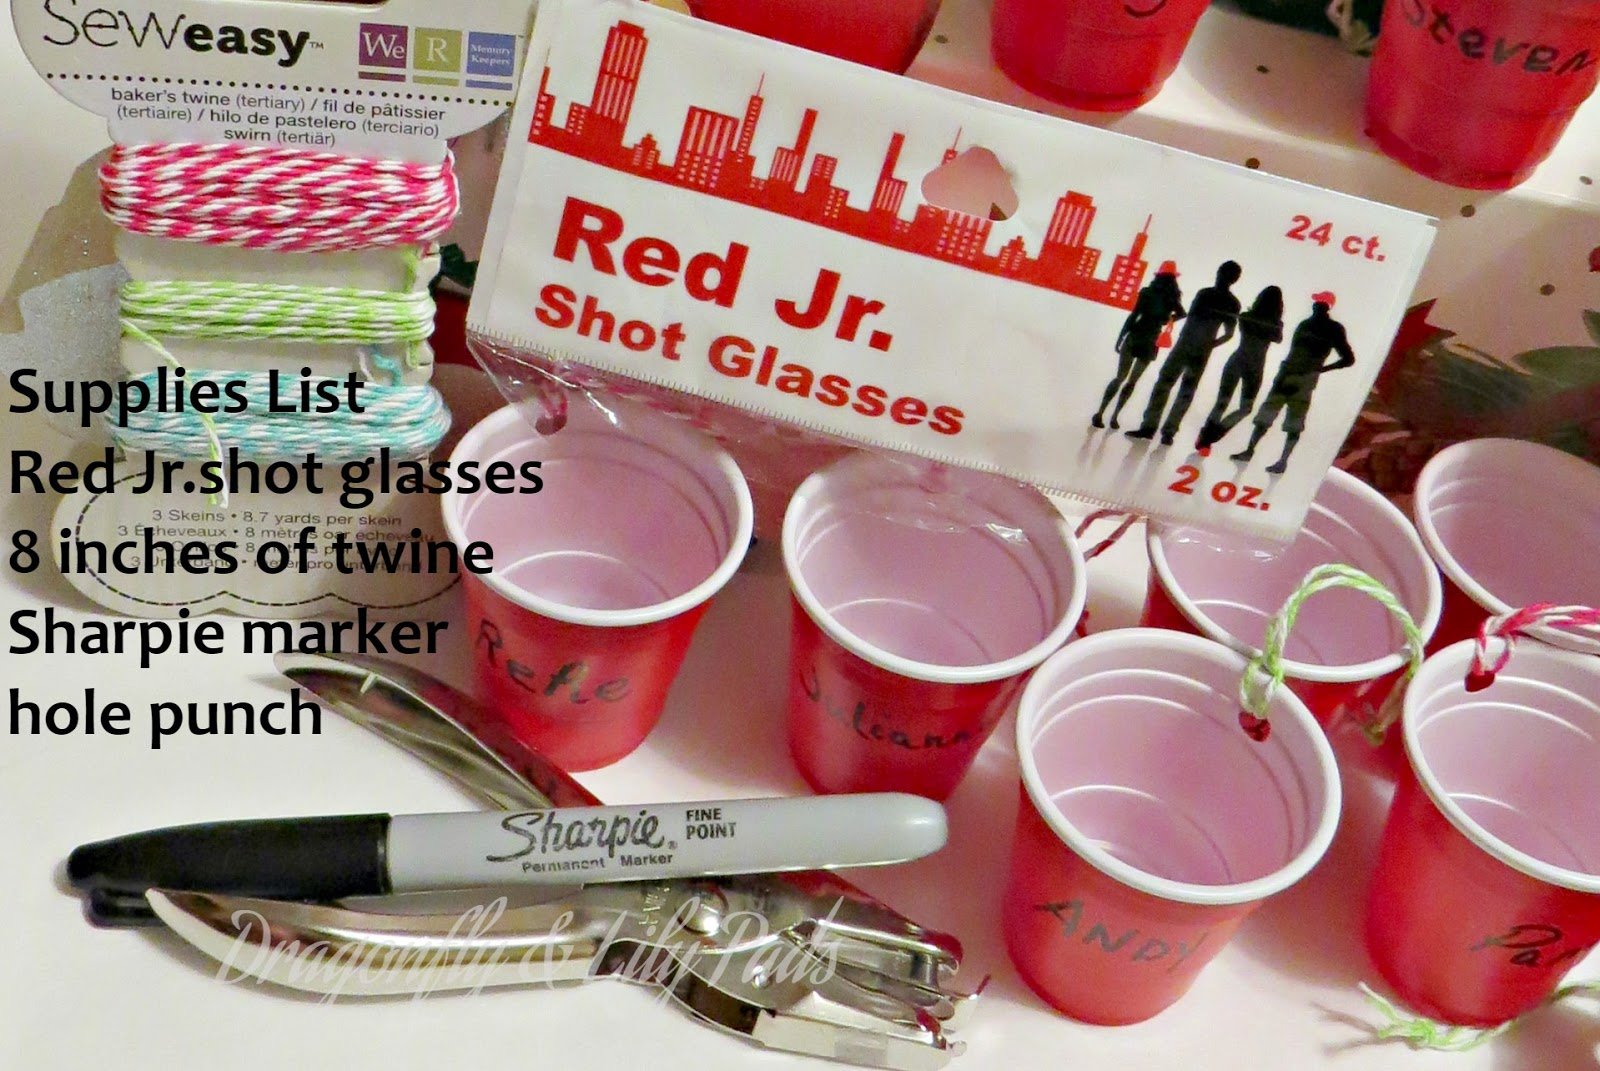 Sharpie Marker, Decroative Twine, Hole Punch, Red Jr. Shopt Glasses, Christmas Ornament Red Solo Cups